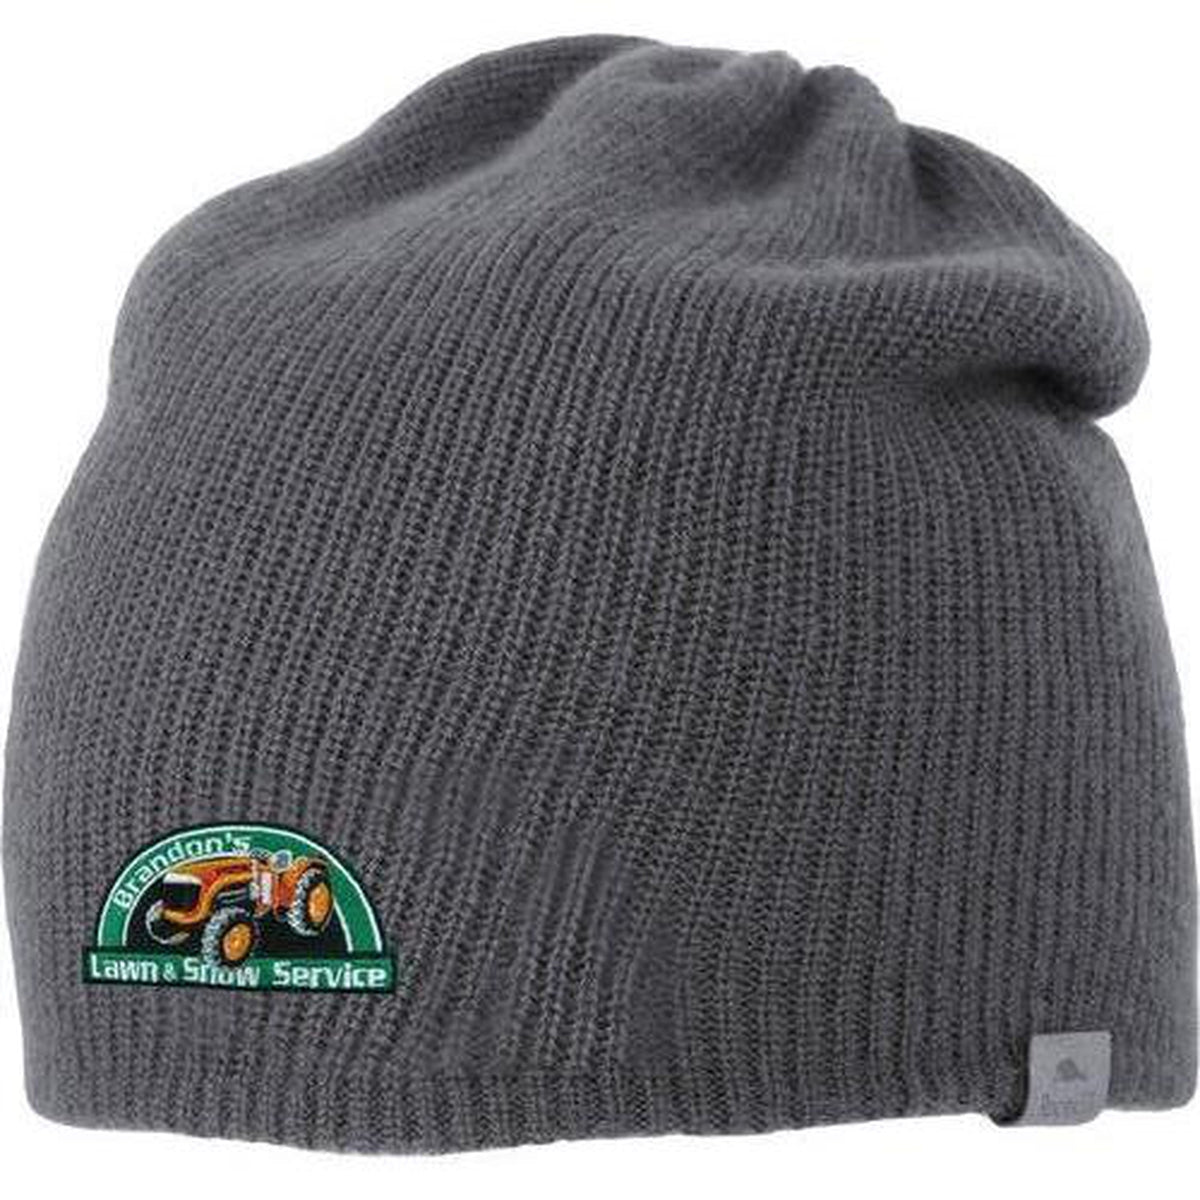 Roots73 Peaceriver Toque